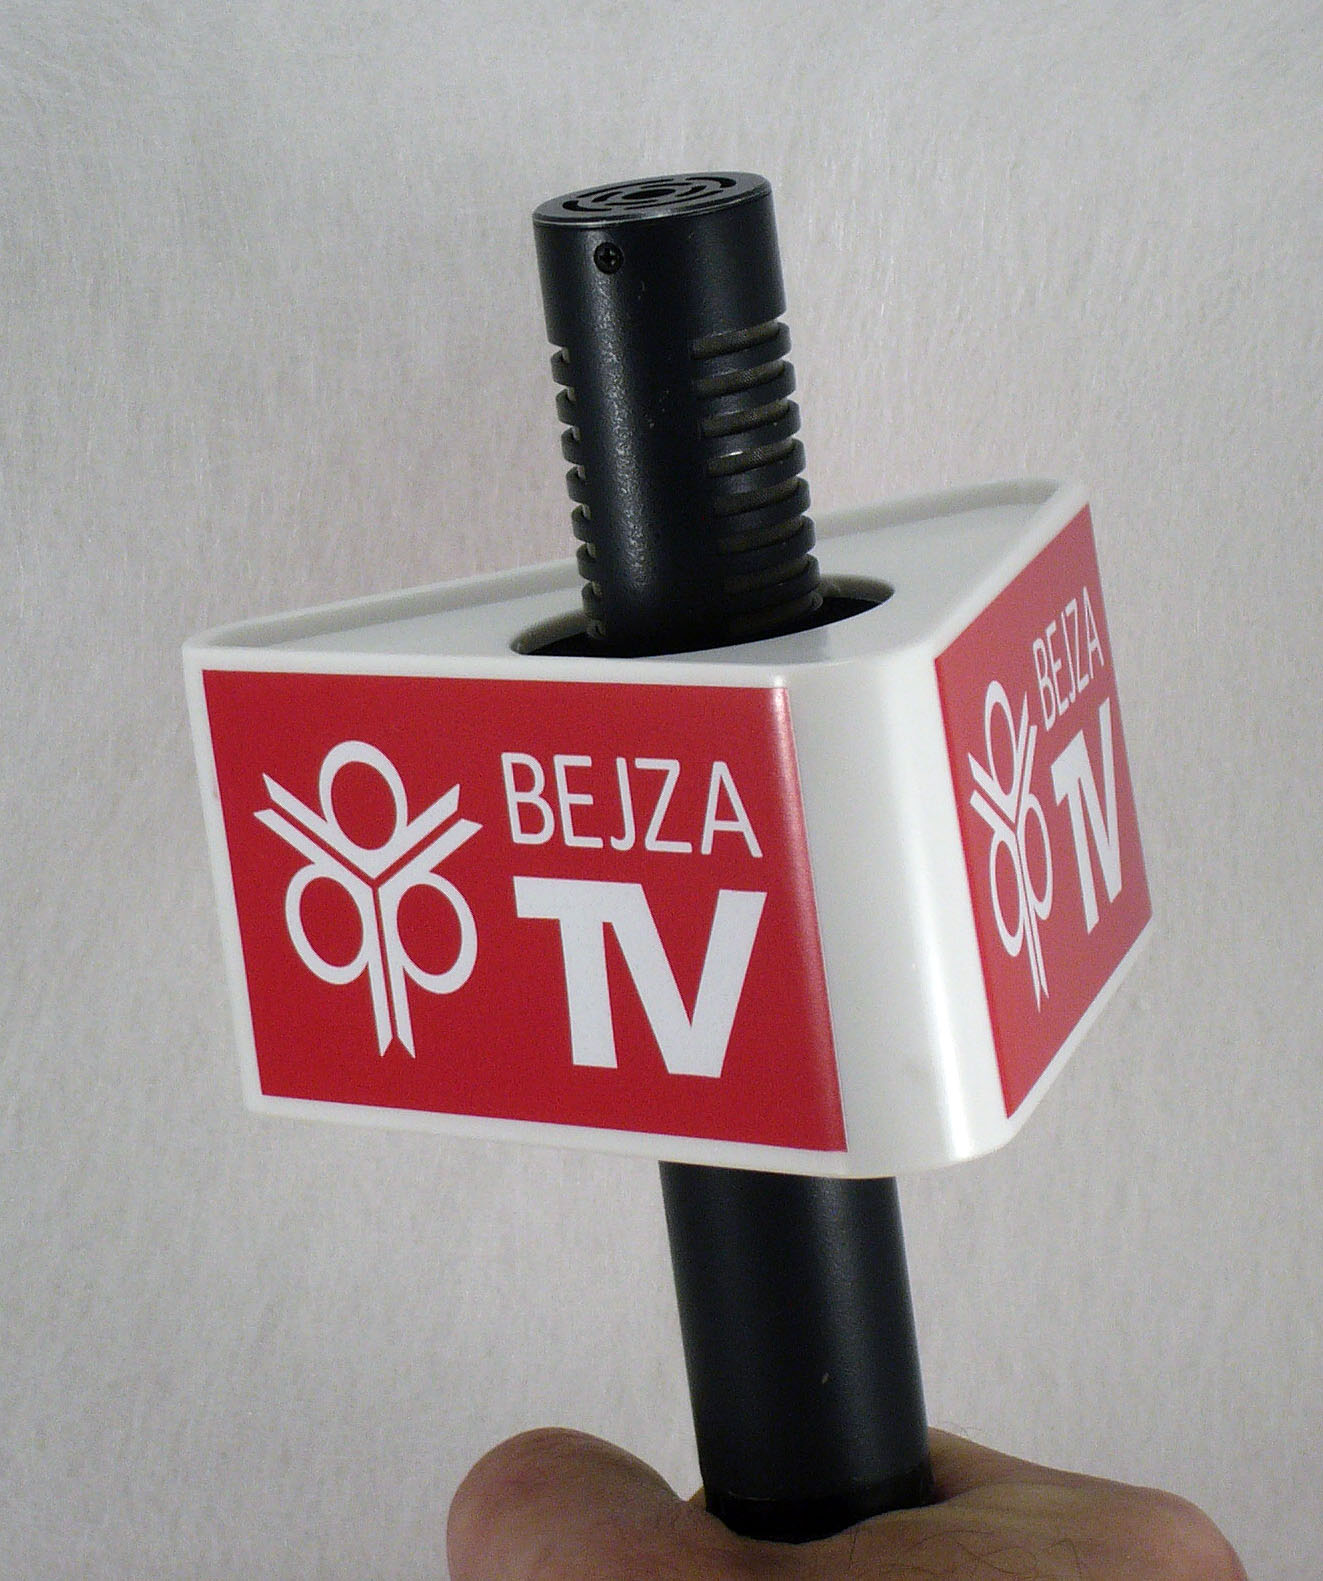 Mic Triangle Bejza TV